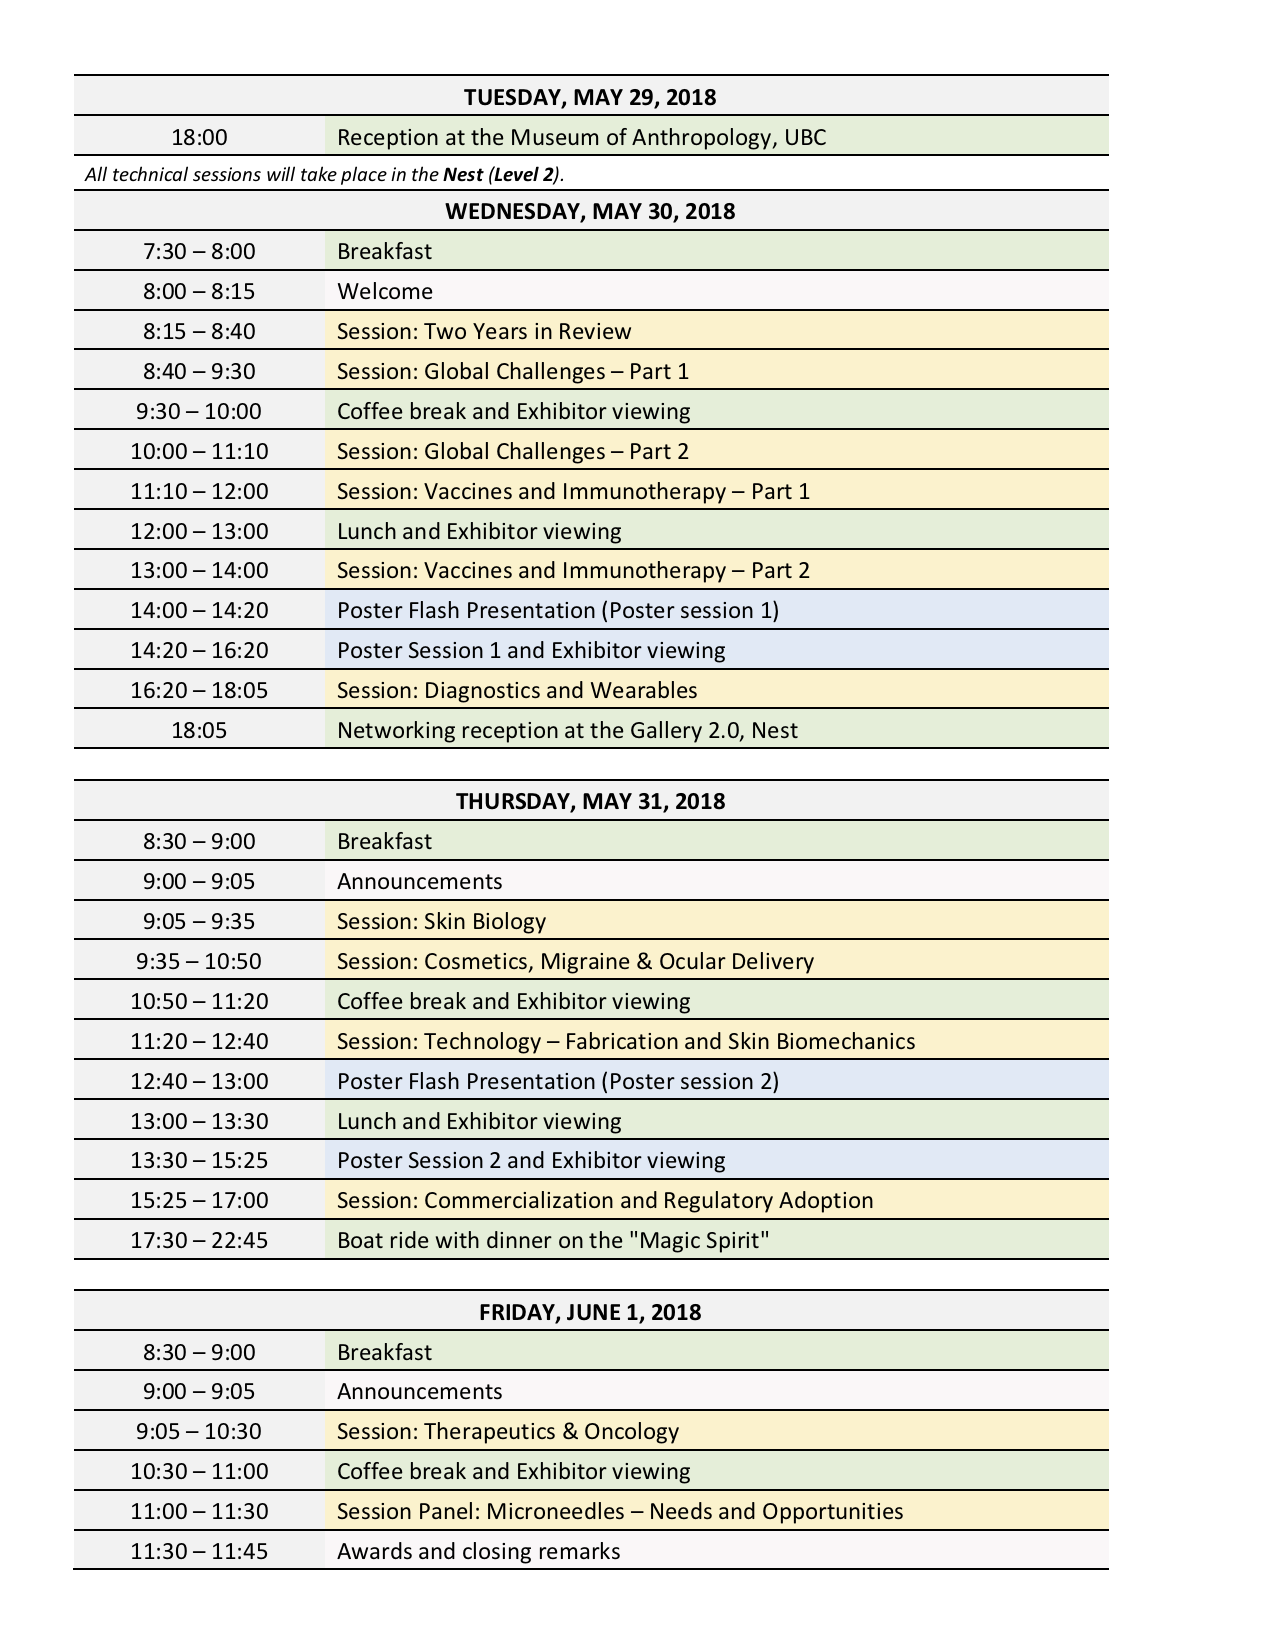 ConferenceProgramOverview.png